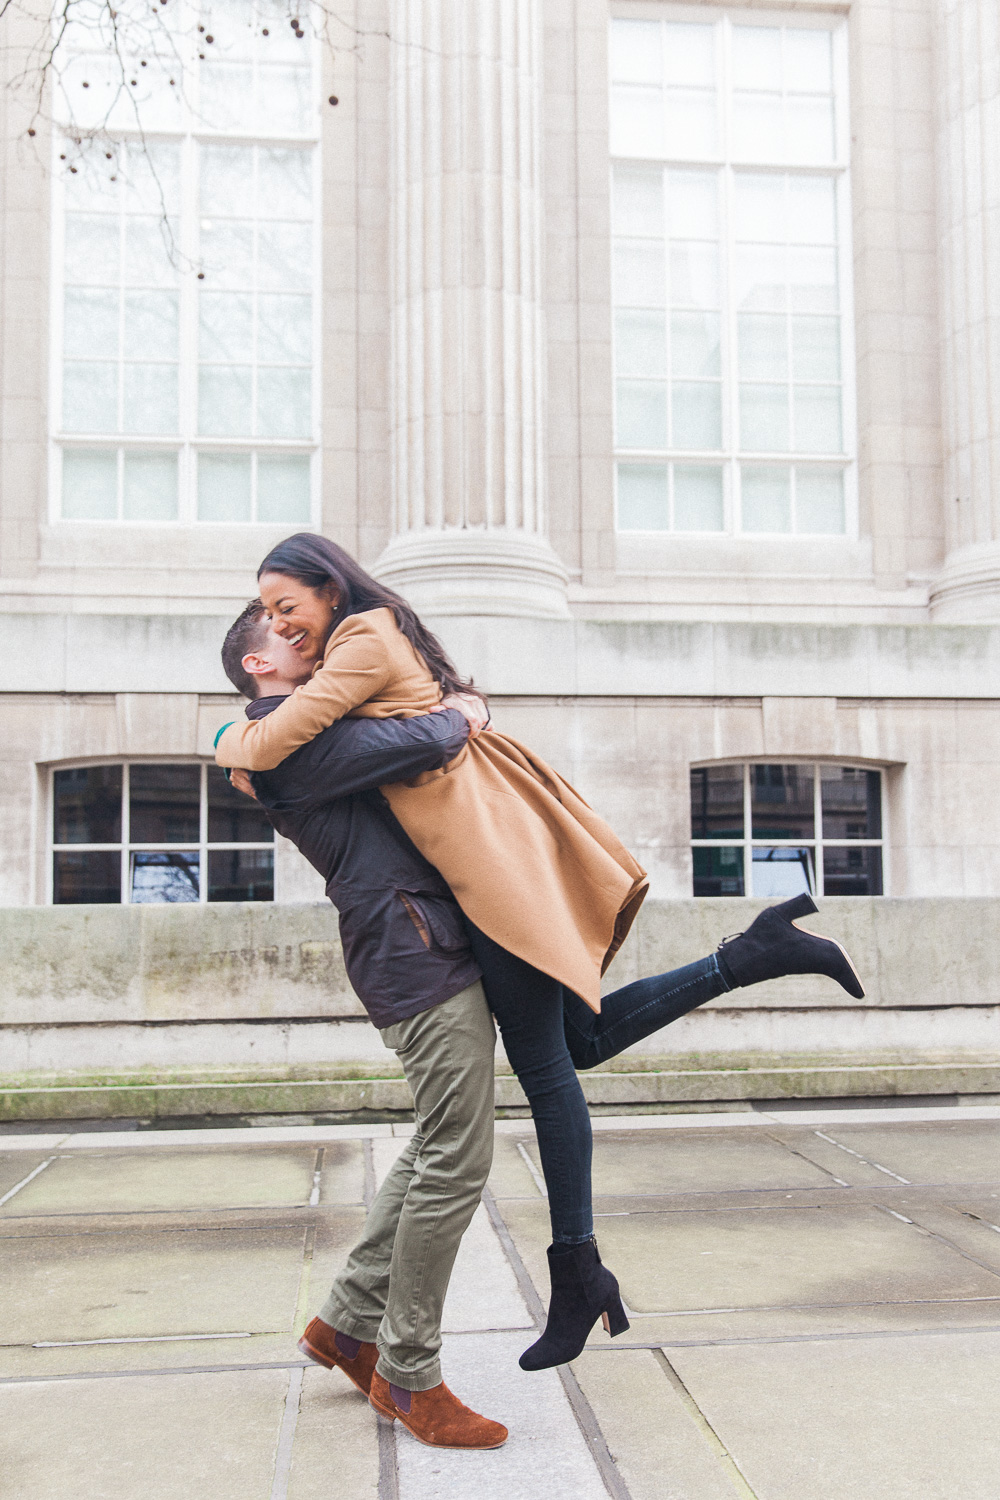 Groom lifting bride during their engagement shoot in London